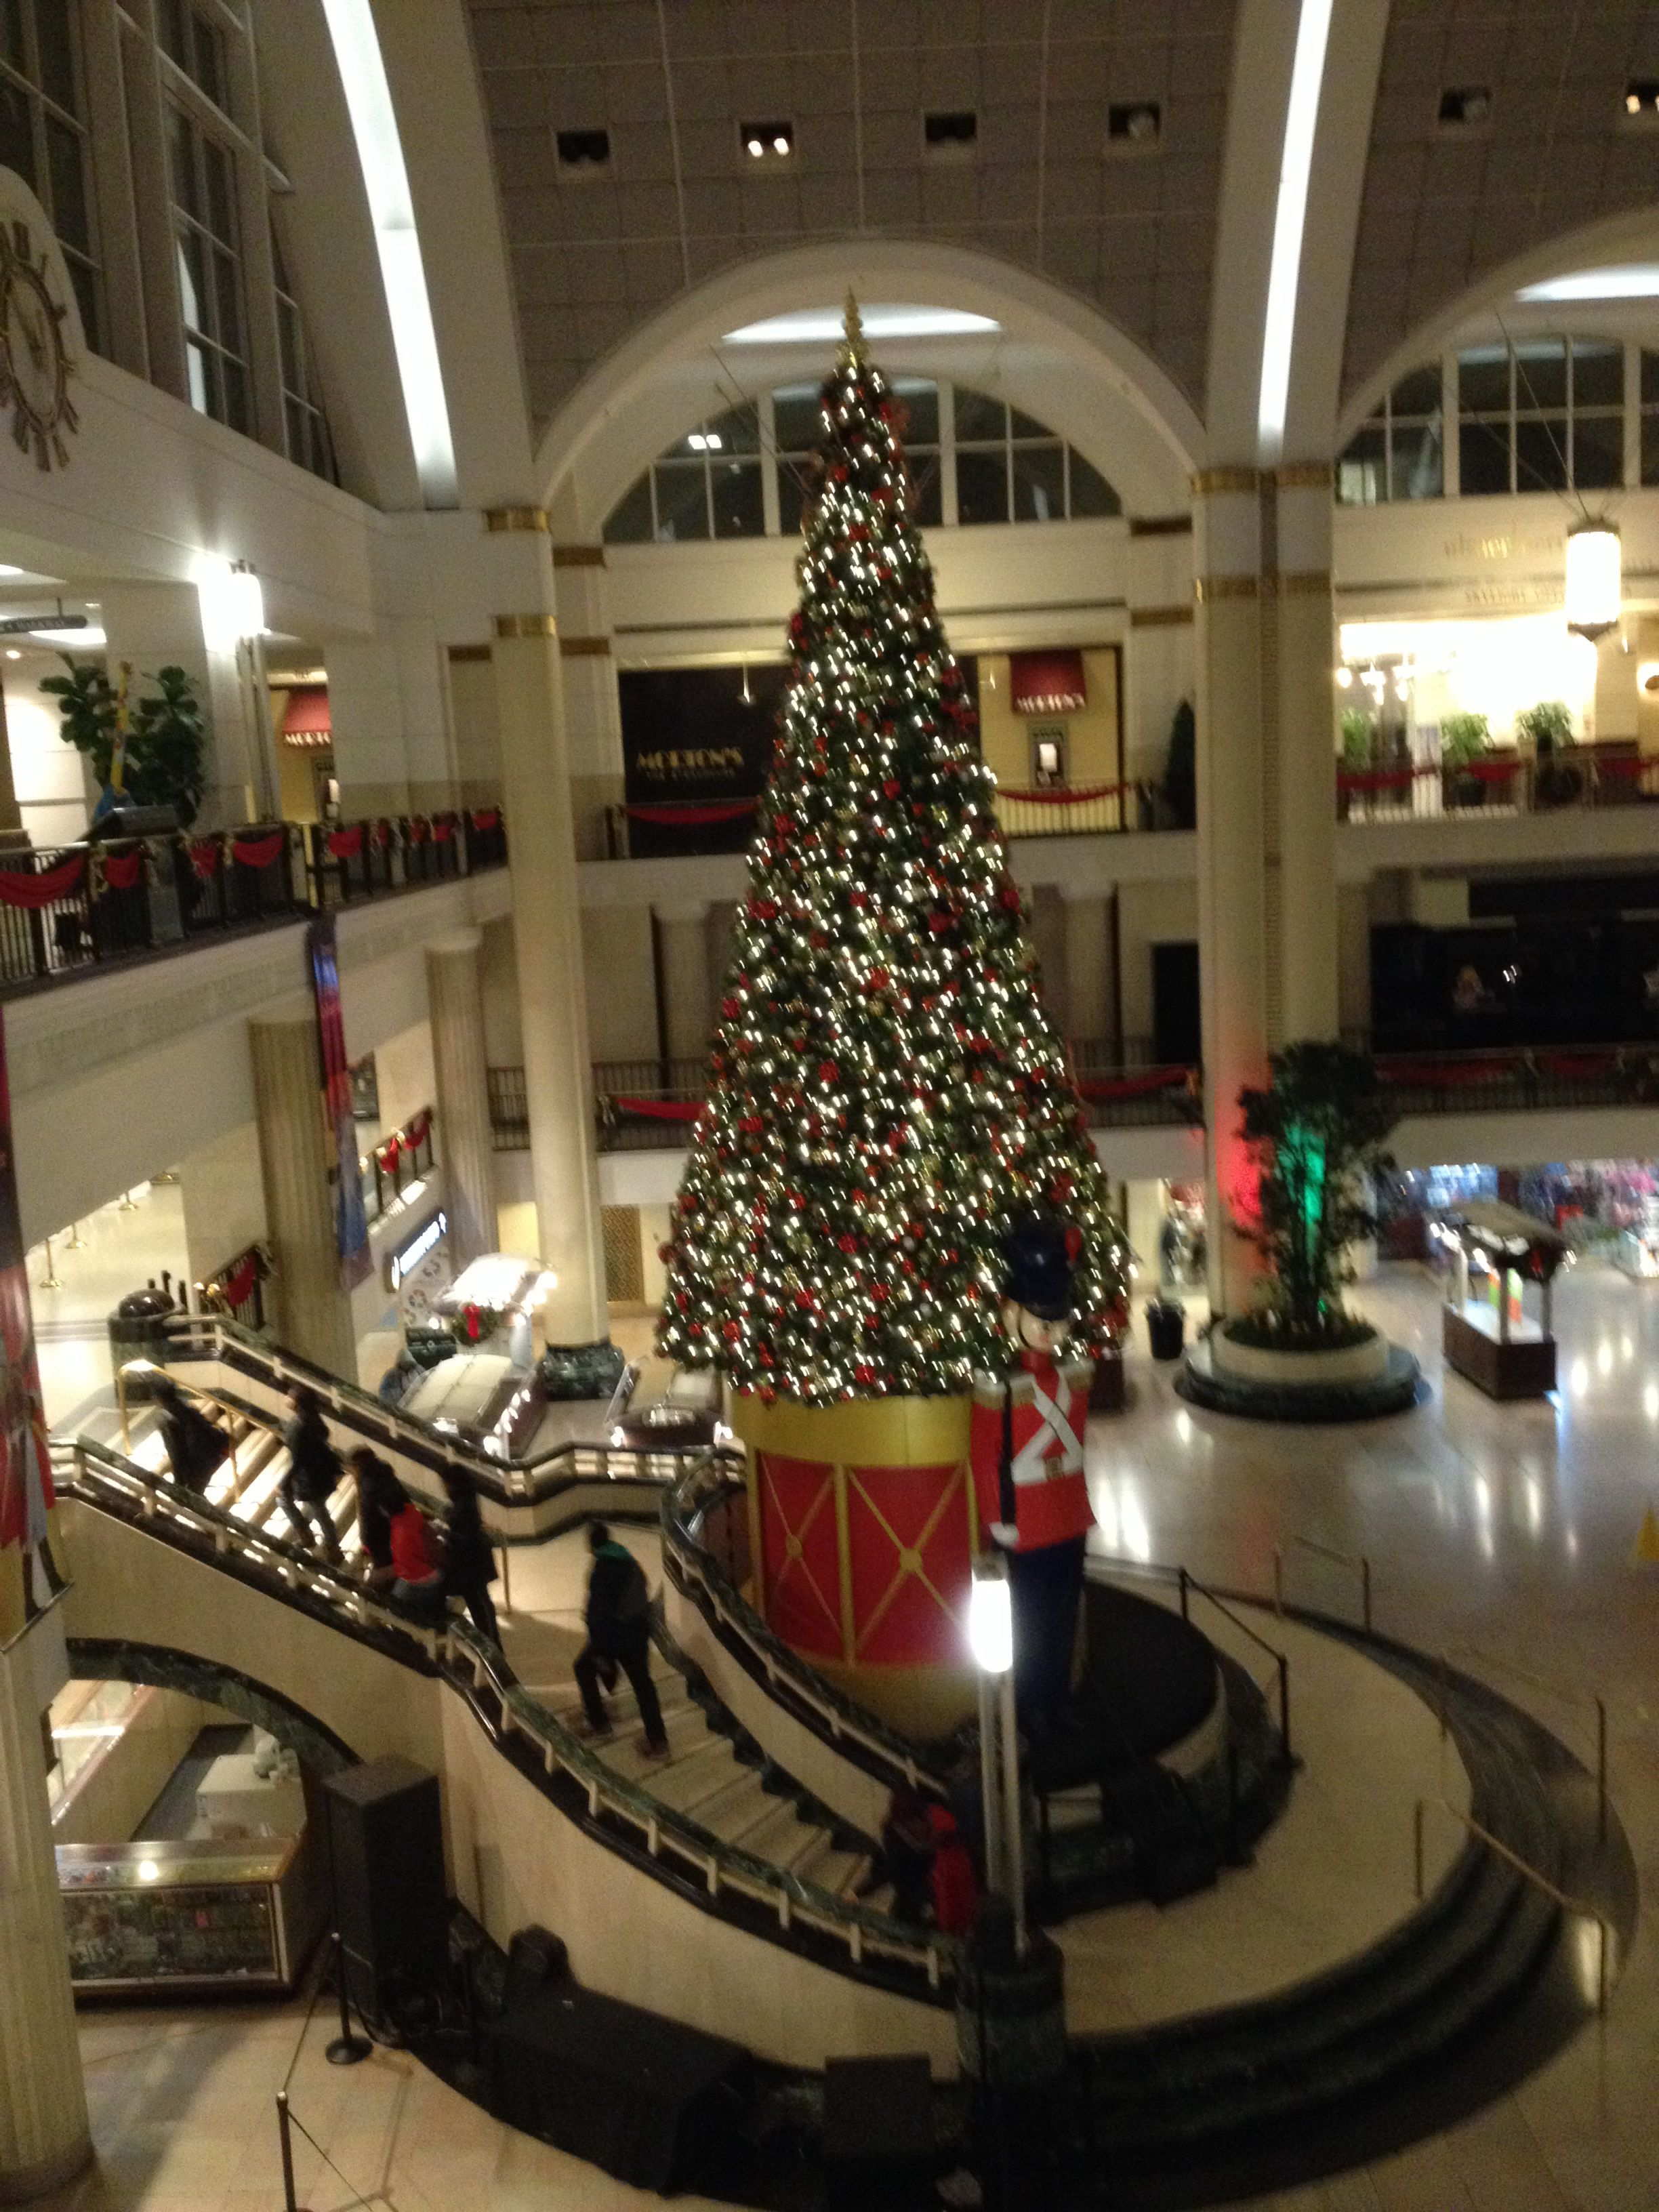 Tower City Center, Cleveland, Ohio